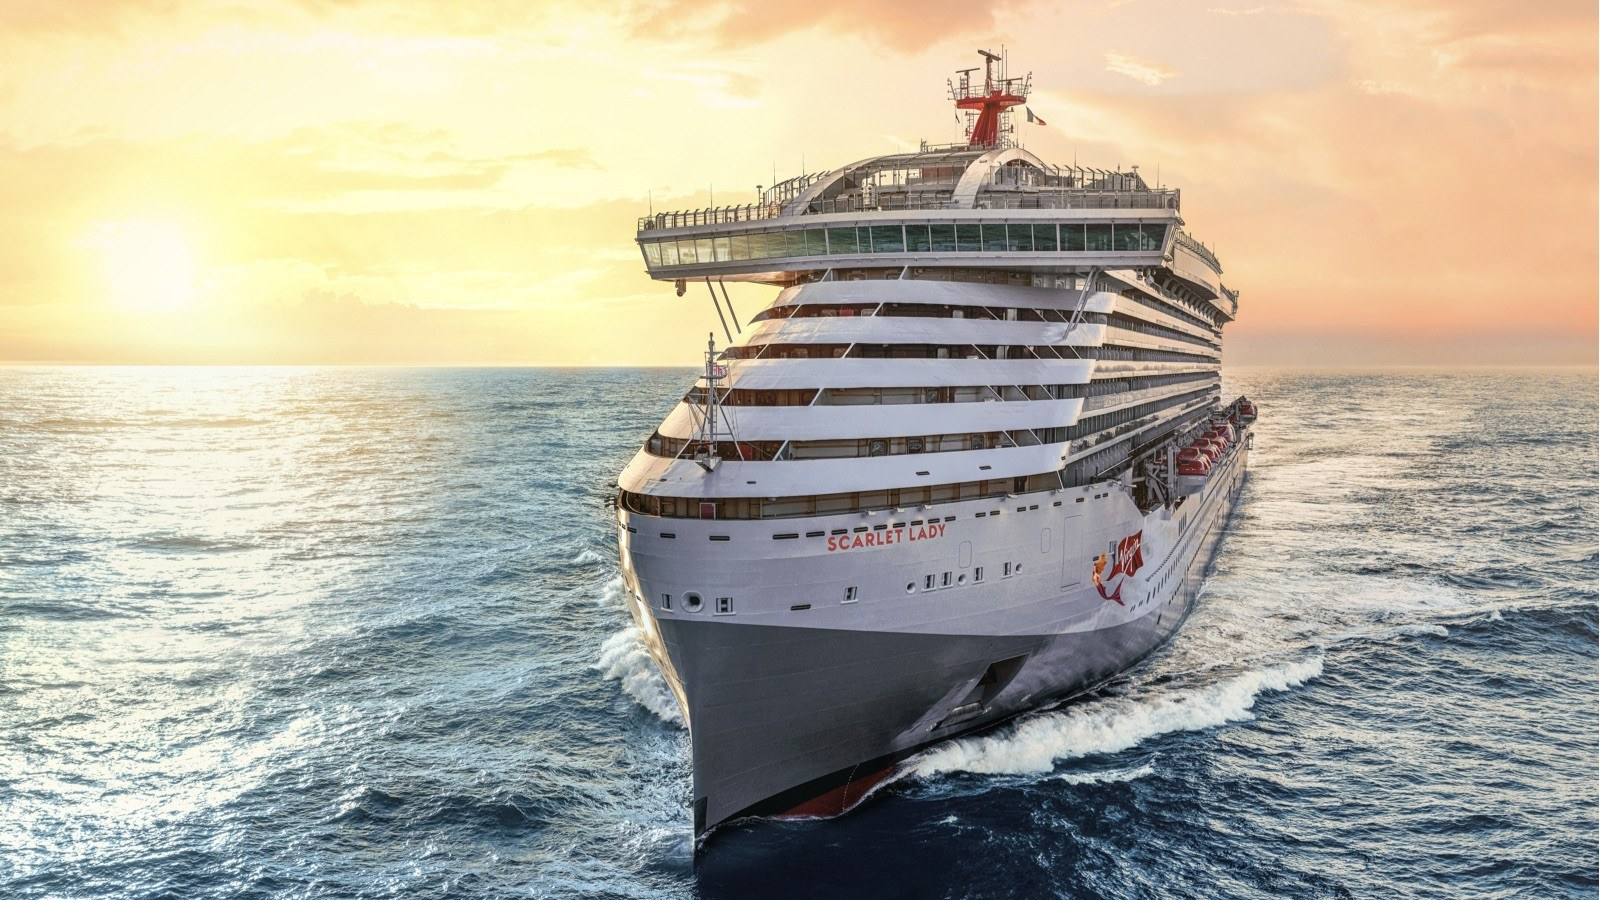 Virgin Voyages to Offer Summer Soirée Series in UK